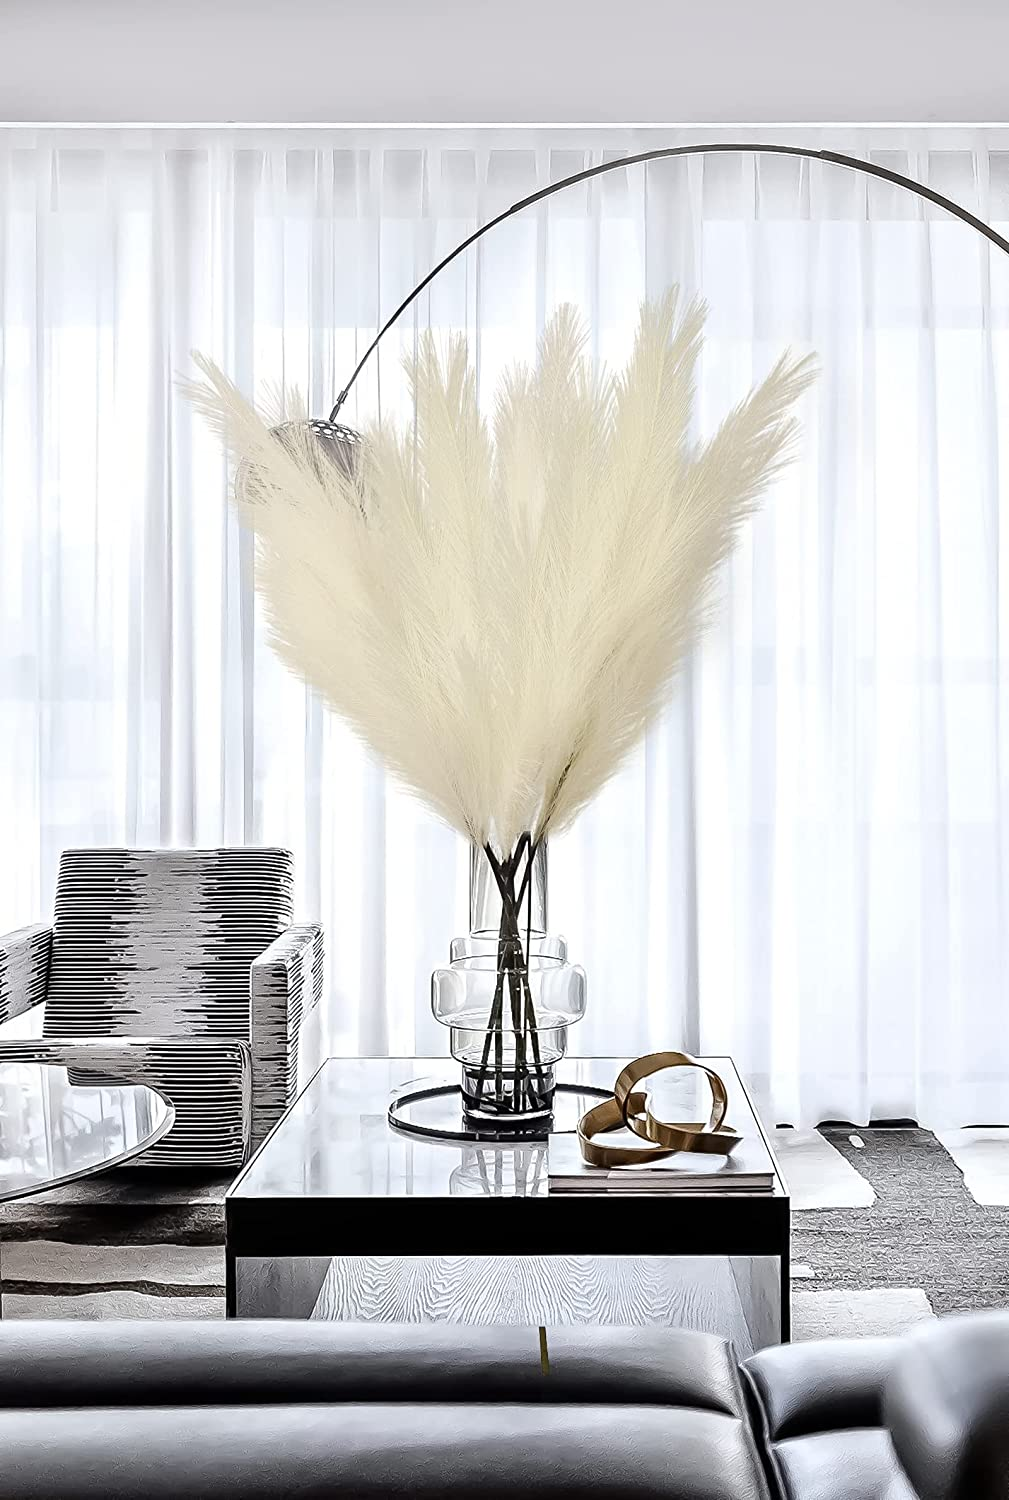 TGNISI Pampas Grass 5 Pcs Fashion Faux and 100CM Tall Large-scale sale Large